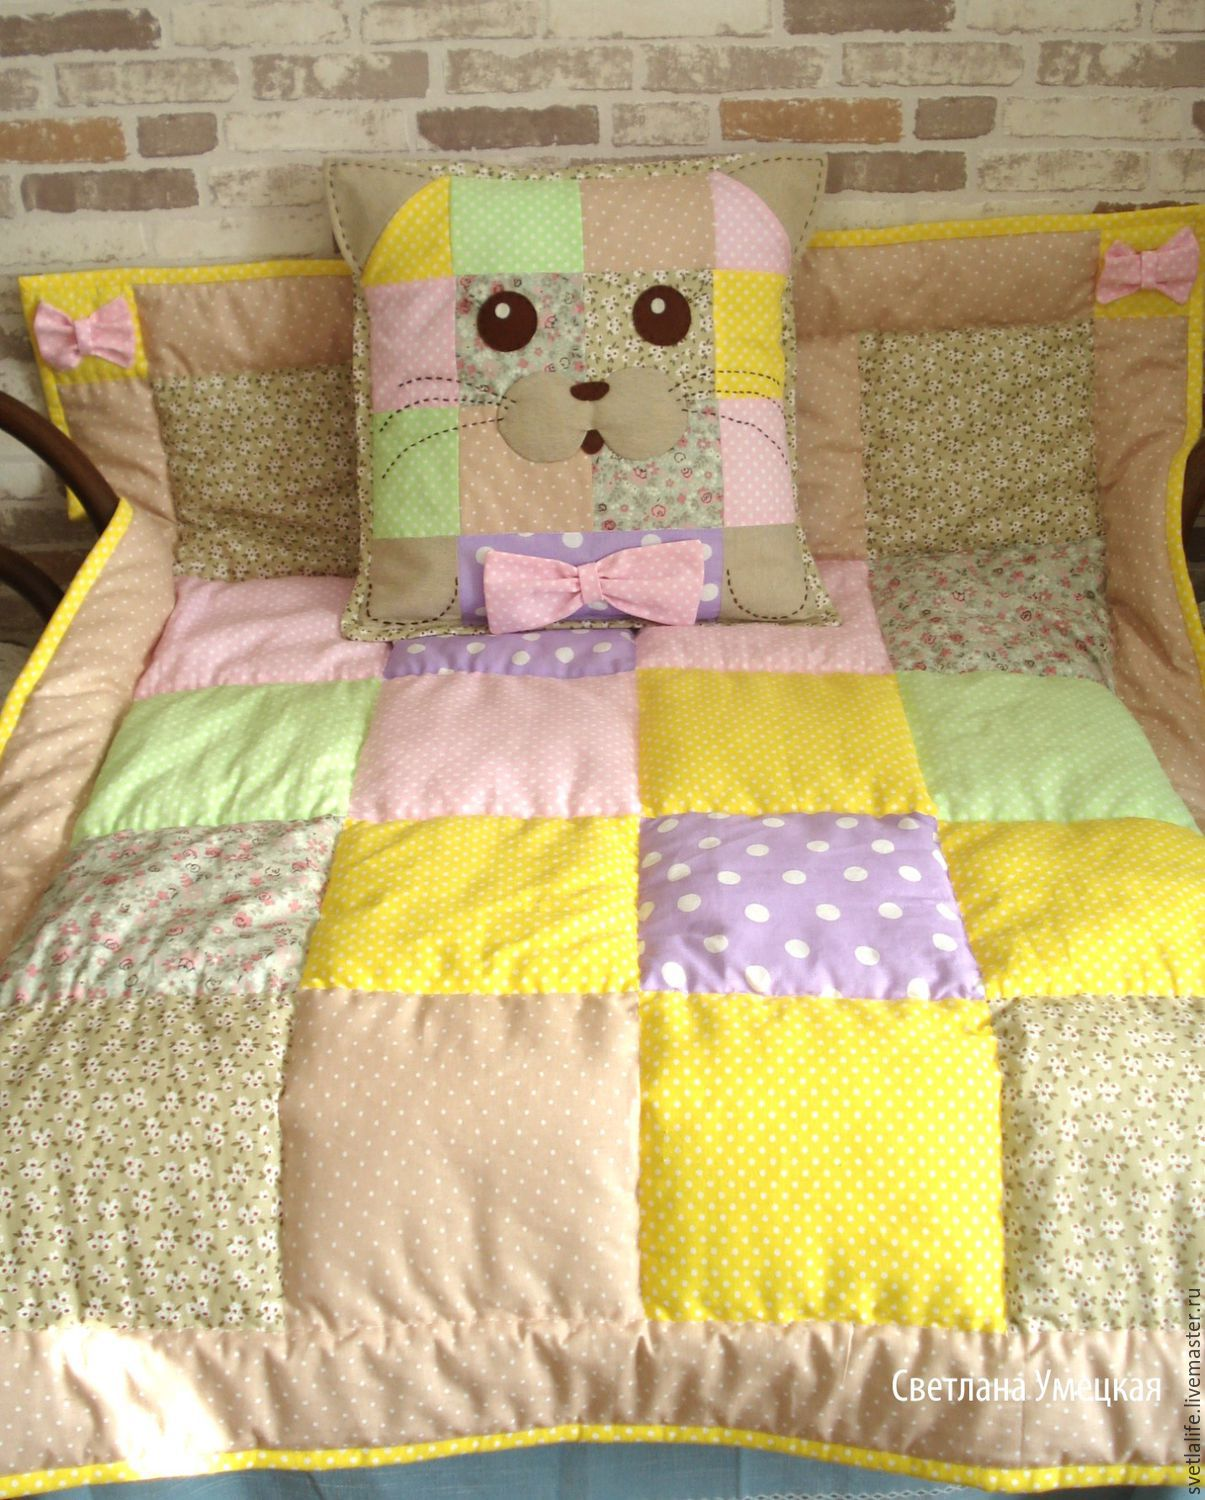 Quilt and pillow for a child up to 2 years.